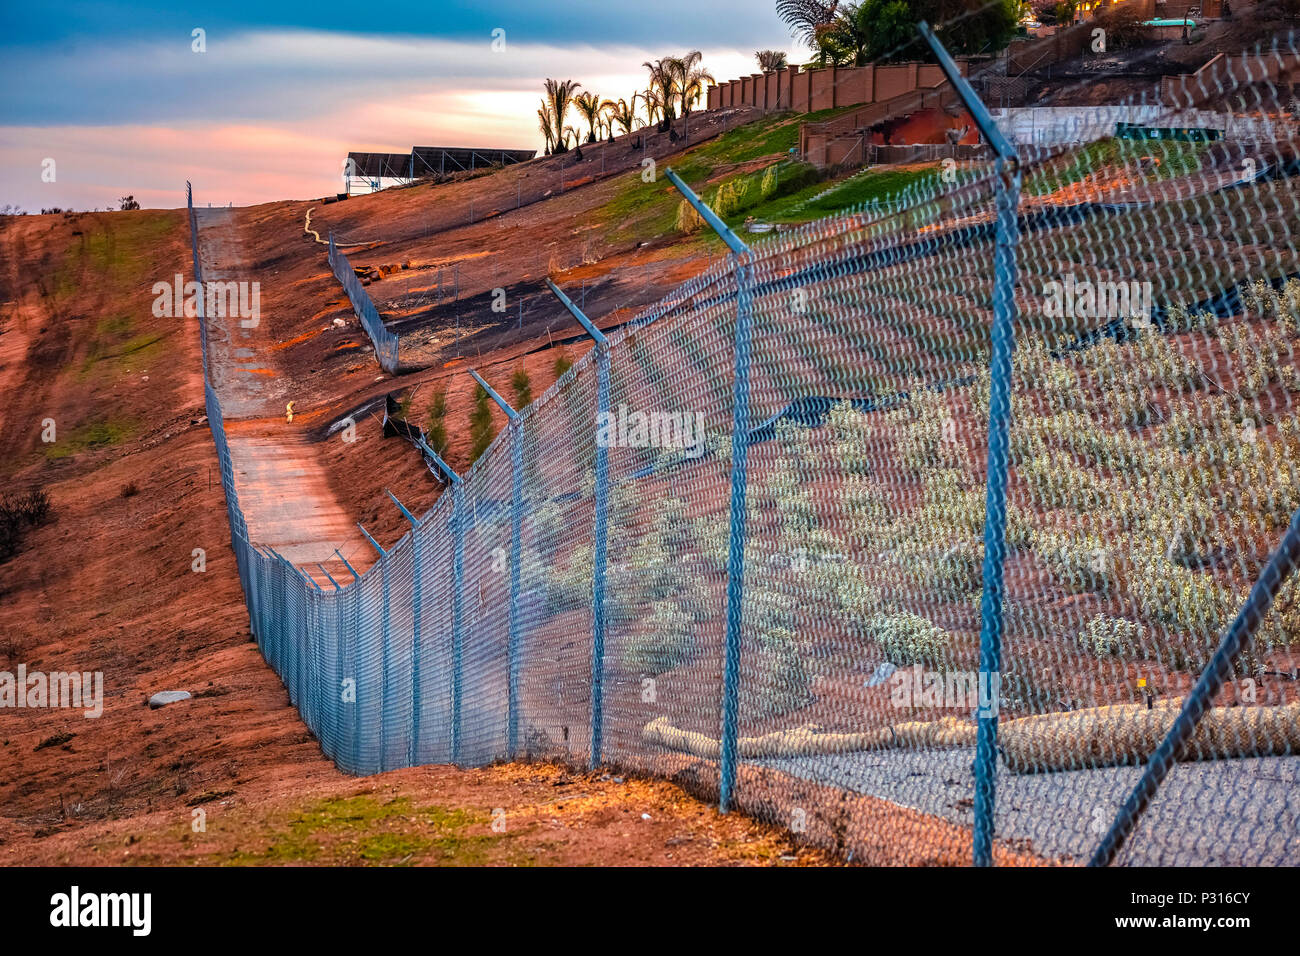 Barbed wire on chain link fence protecting farm in fallbrook